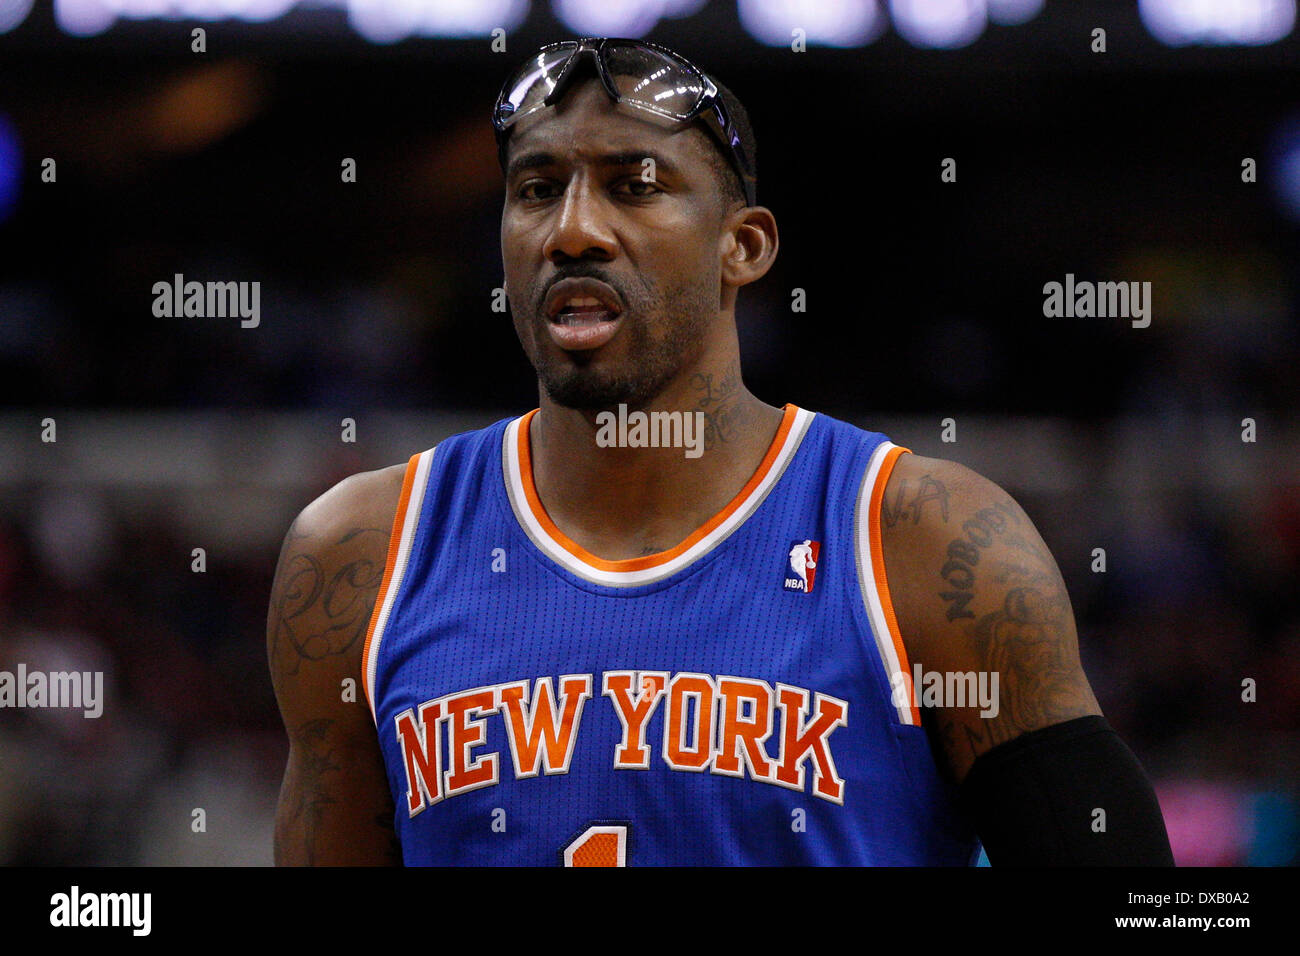 eb435331c Amare Stoudemire Stock Photos   Amare Stoudemire Stock Images - Alamy